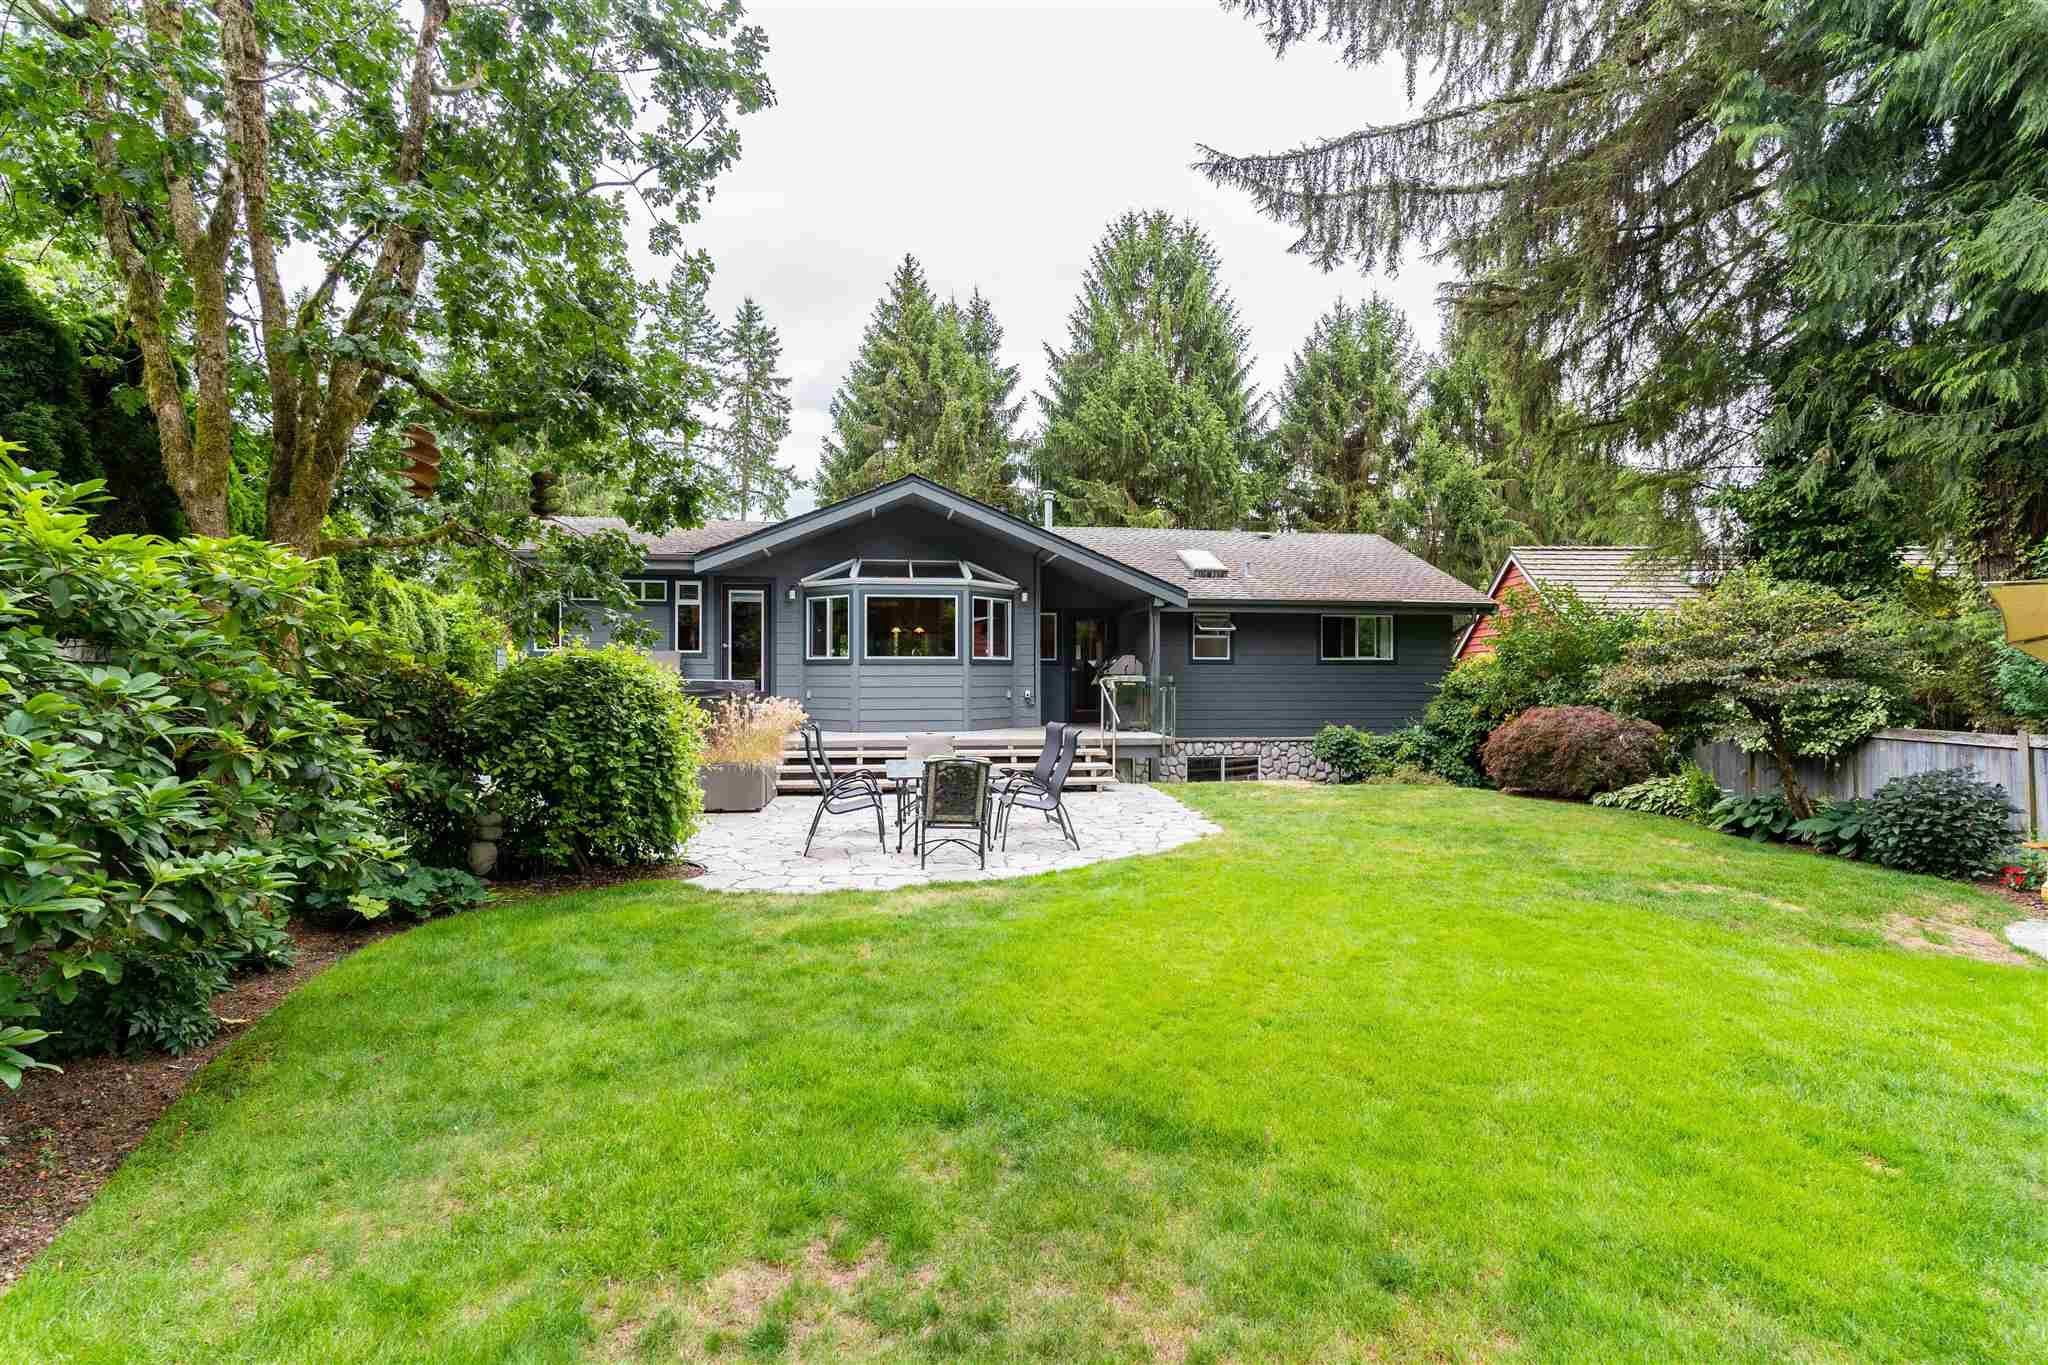 Main Photo: 2774 SECHELT Drive in North Vancouver: Blueridge NV House for sale : MLS®# R2603403